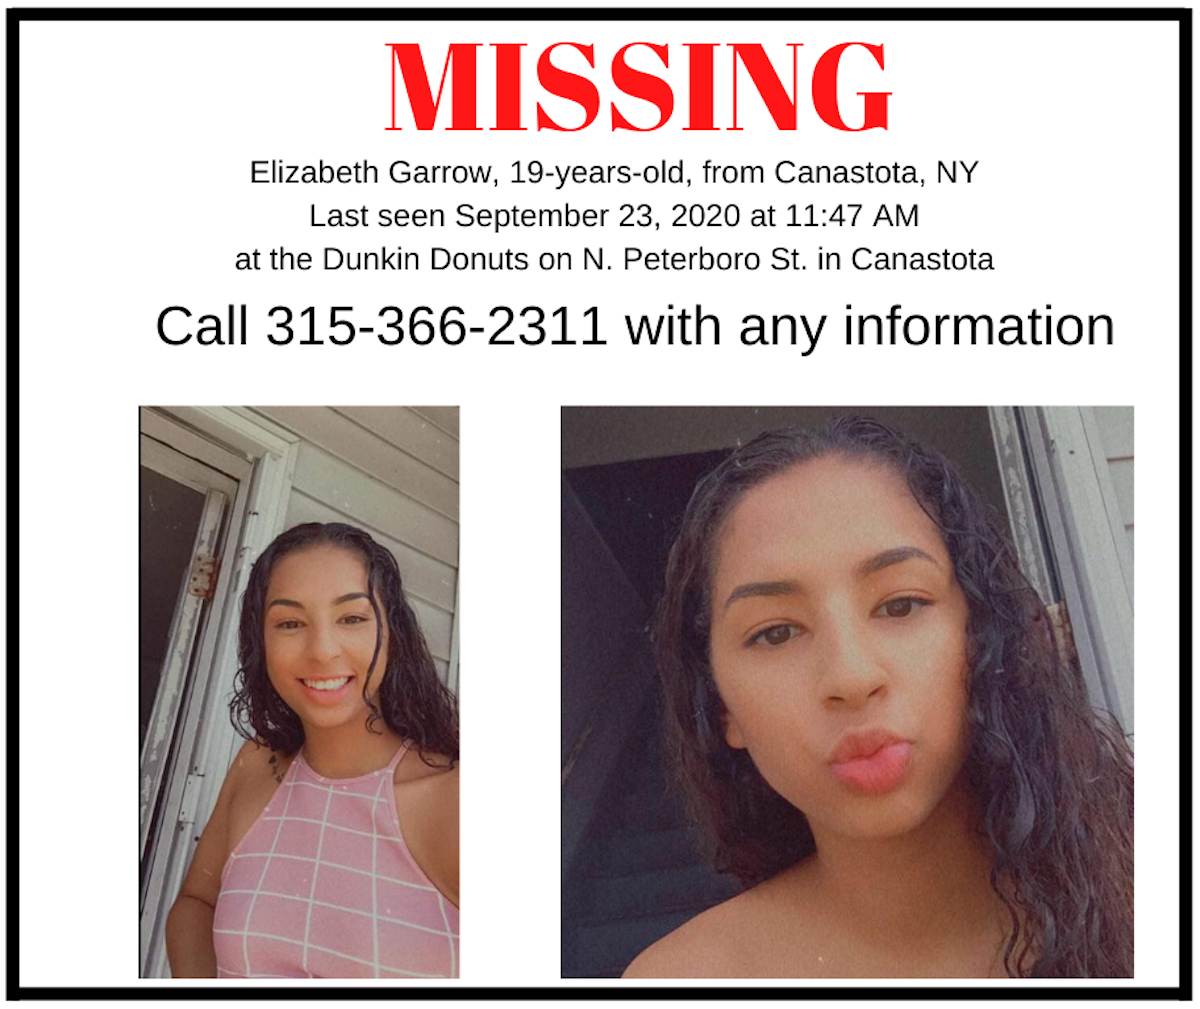 A missing poster disseminated by the Madison County, N.Y. Sheriff's Department portrays Lizzie Garrow.